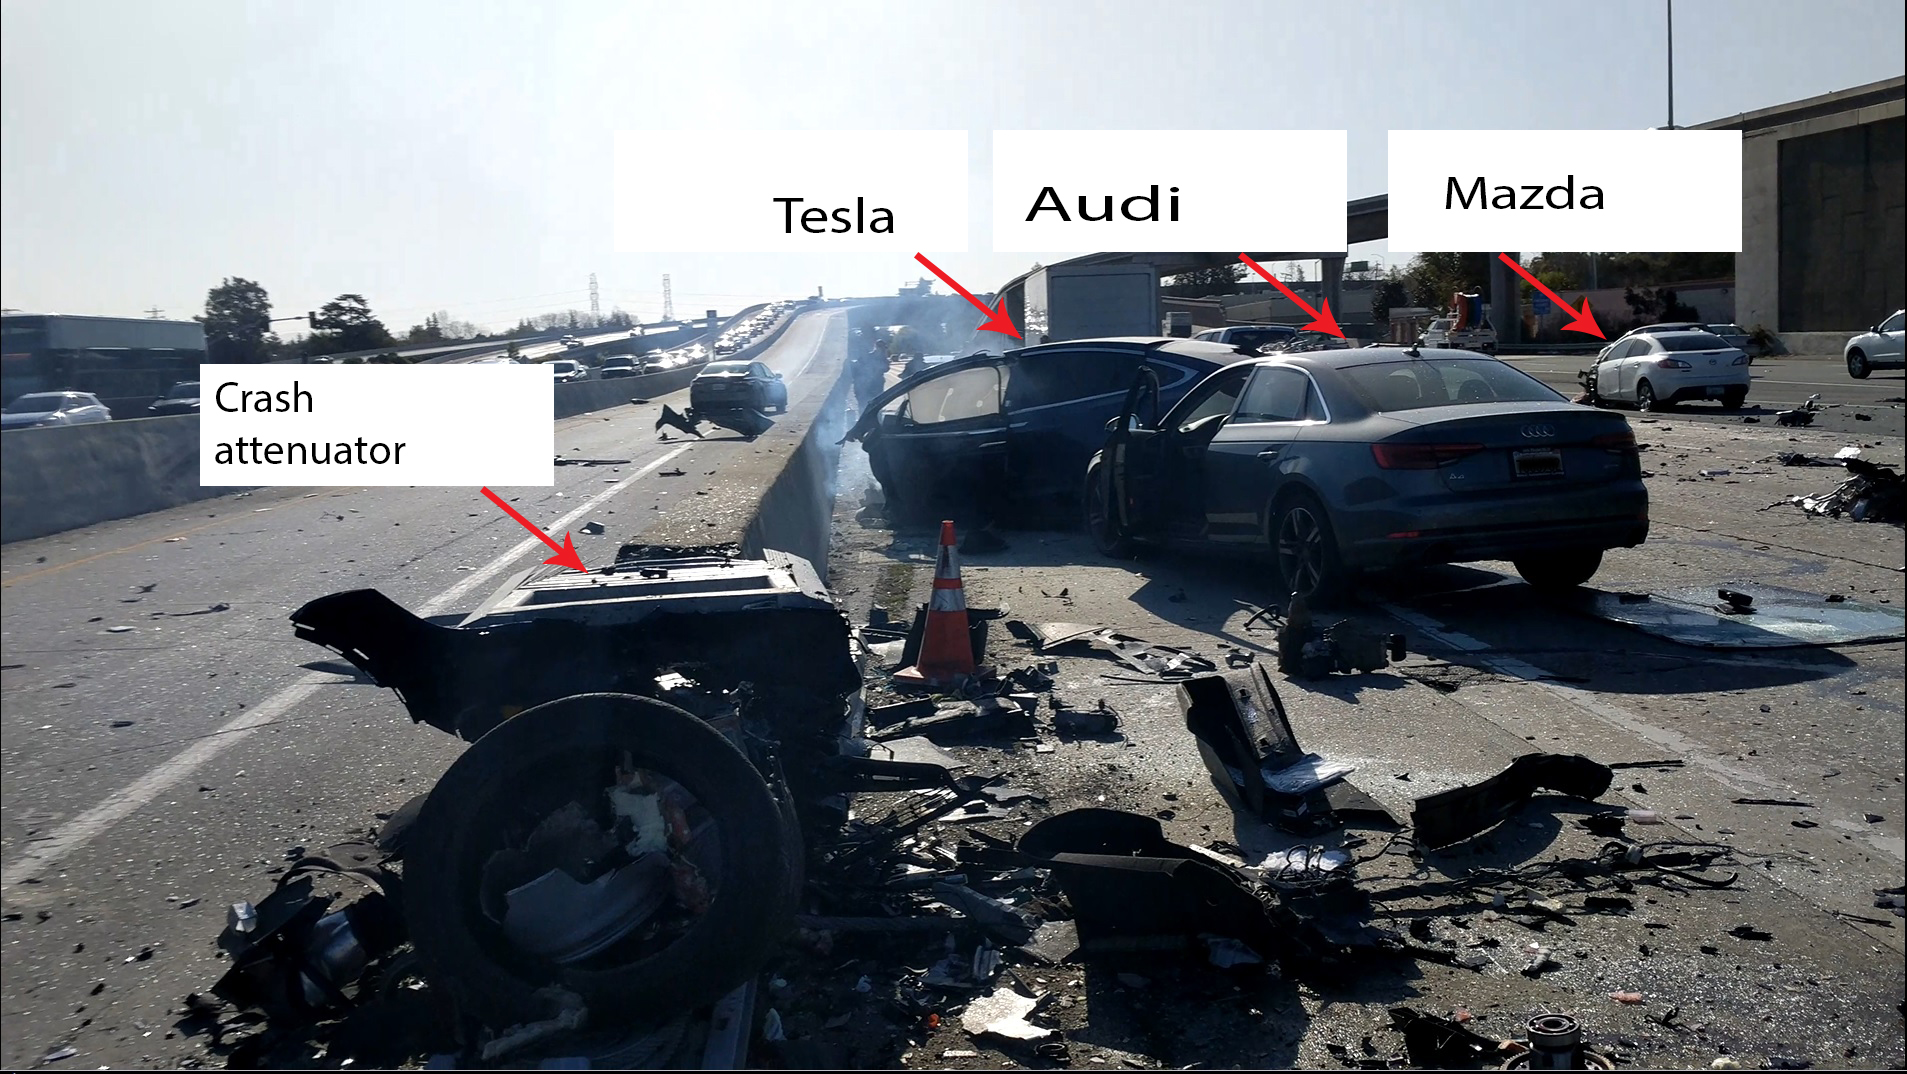 Photo of the final rest locations of the Tesla, Audi and Mazda vehicles.